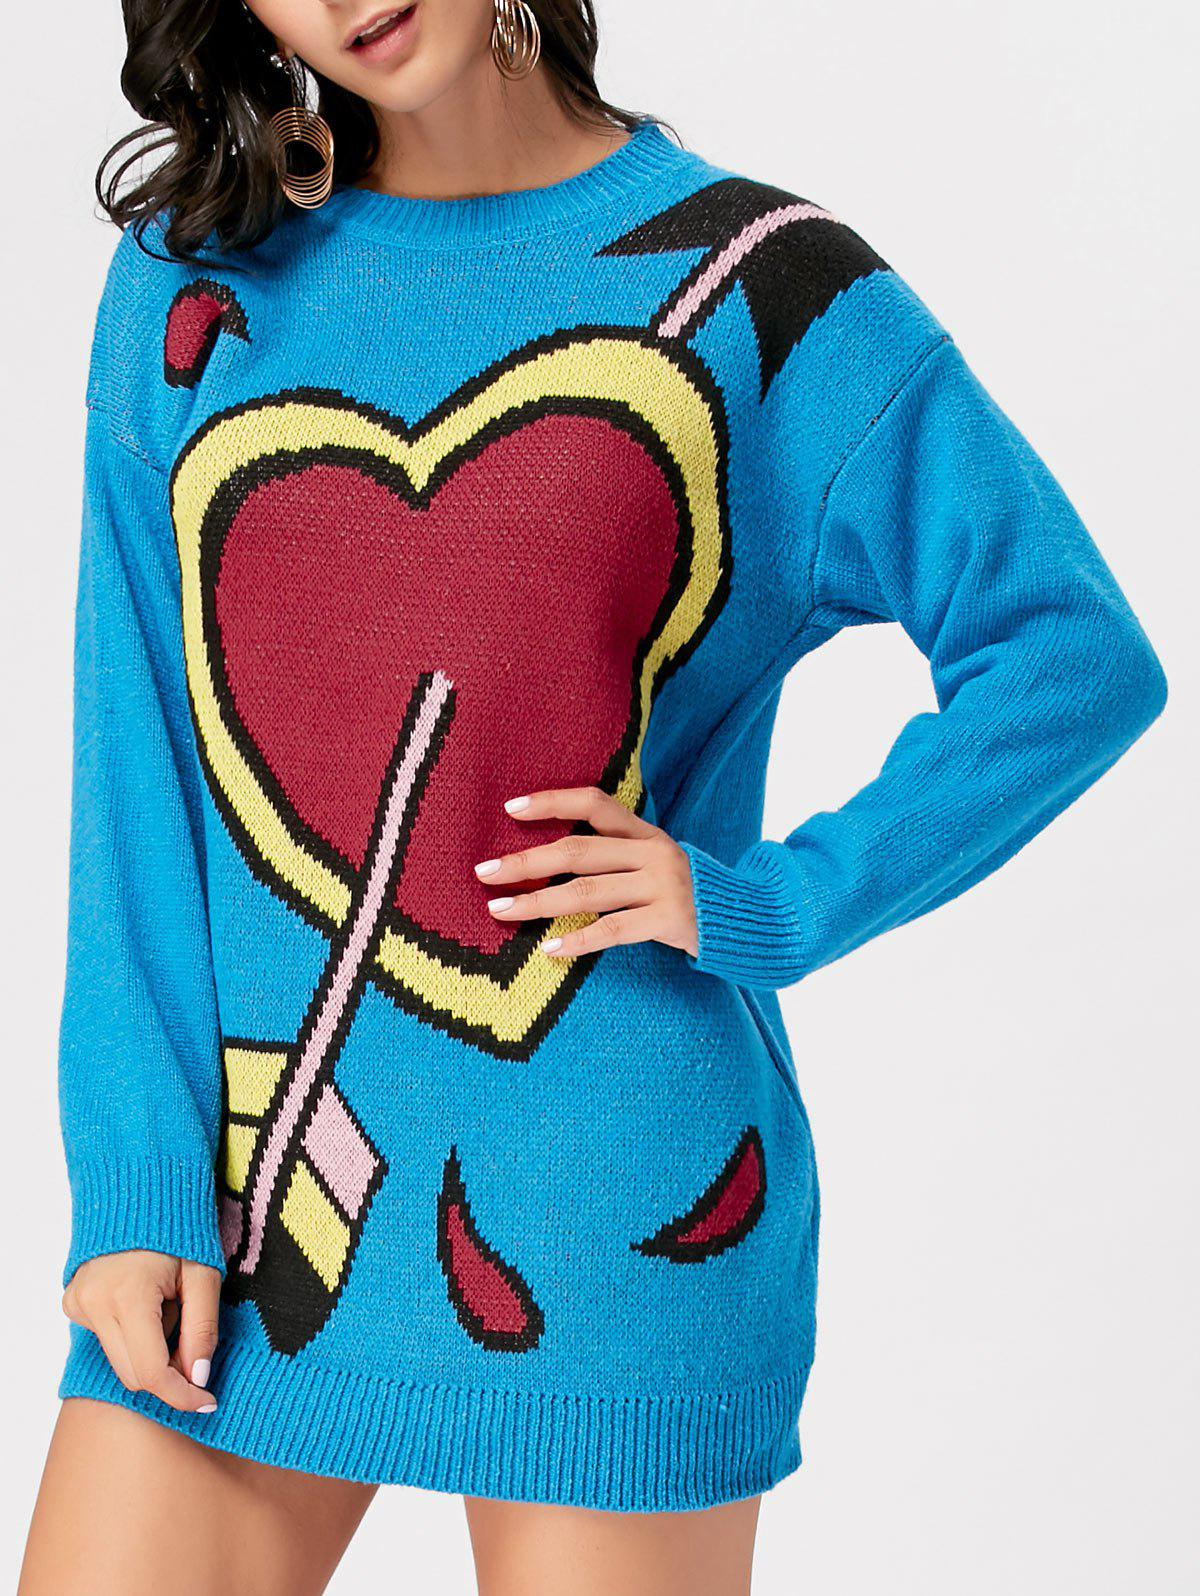 Crew Neck Arrow Heart Mini Sweater Dress - BLUE ONE SIZE